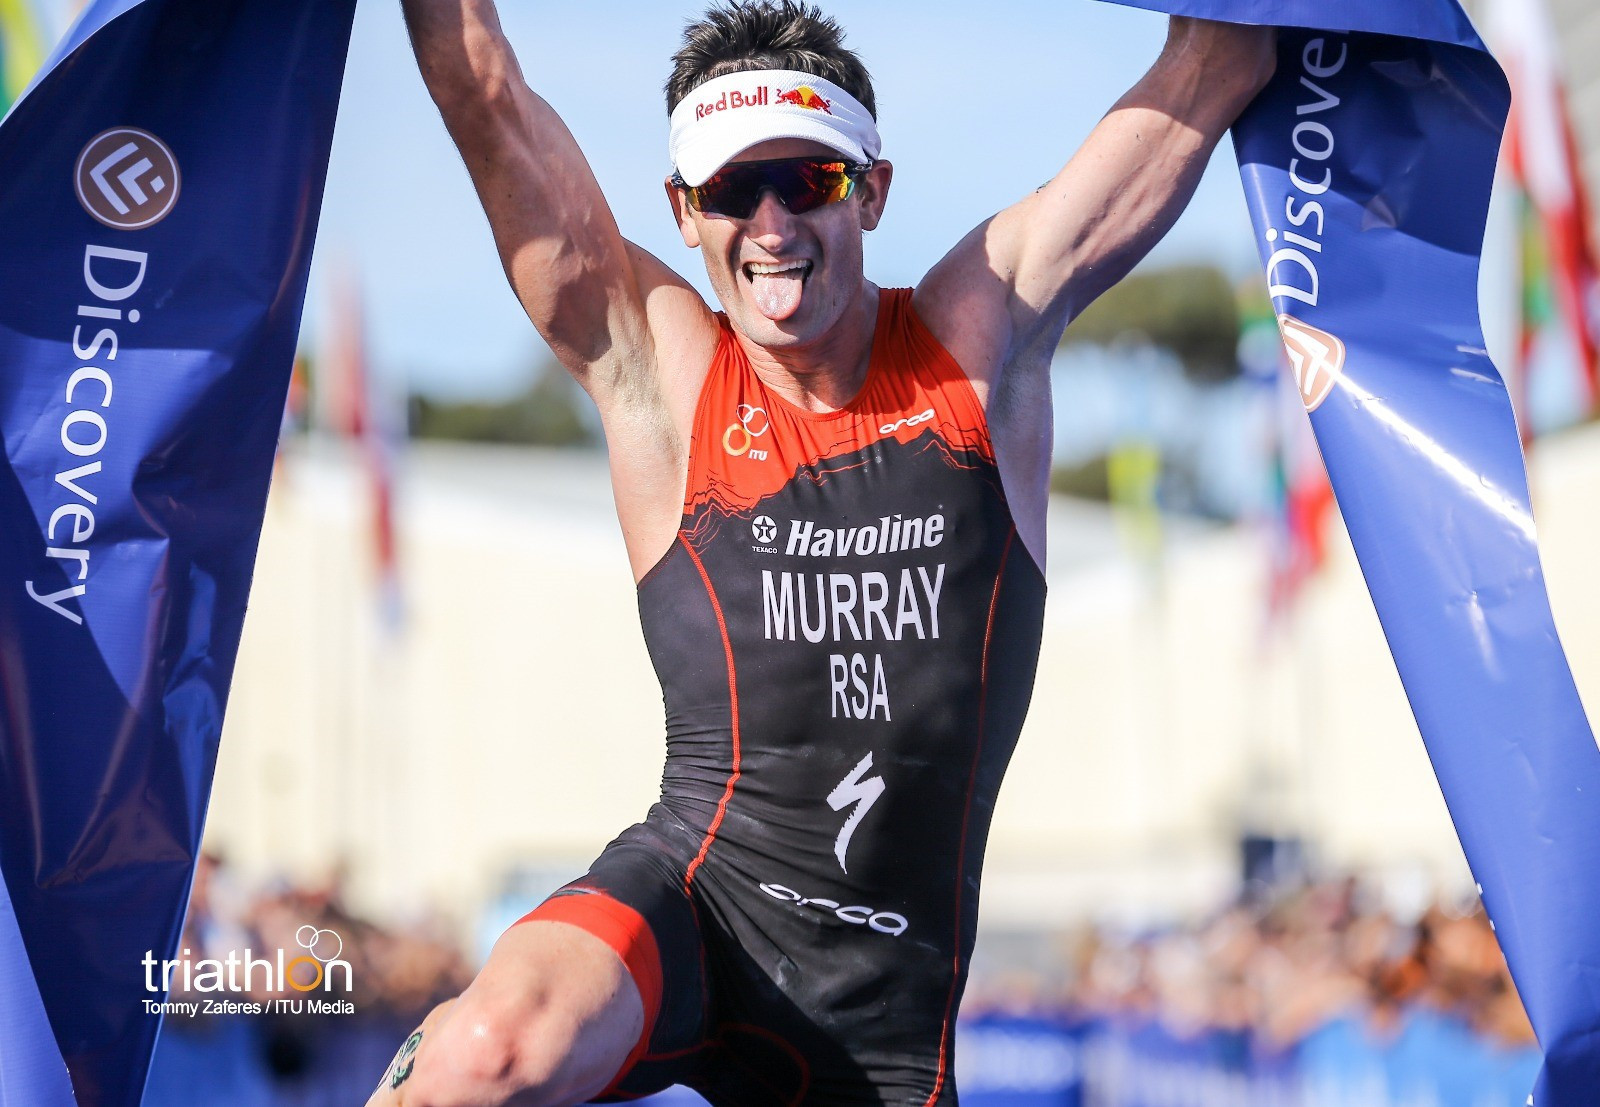 Richard Murray has posted blistering times so far this year over 5km ©World Triathlon